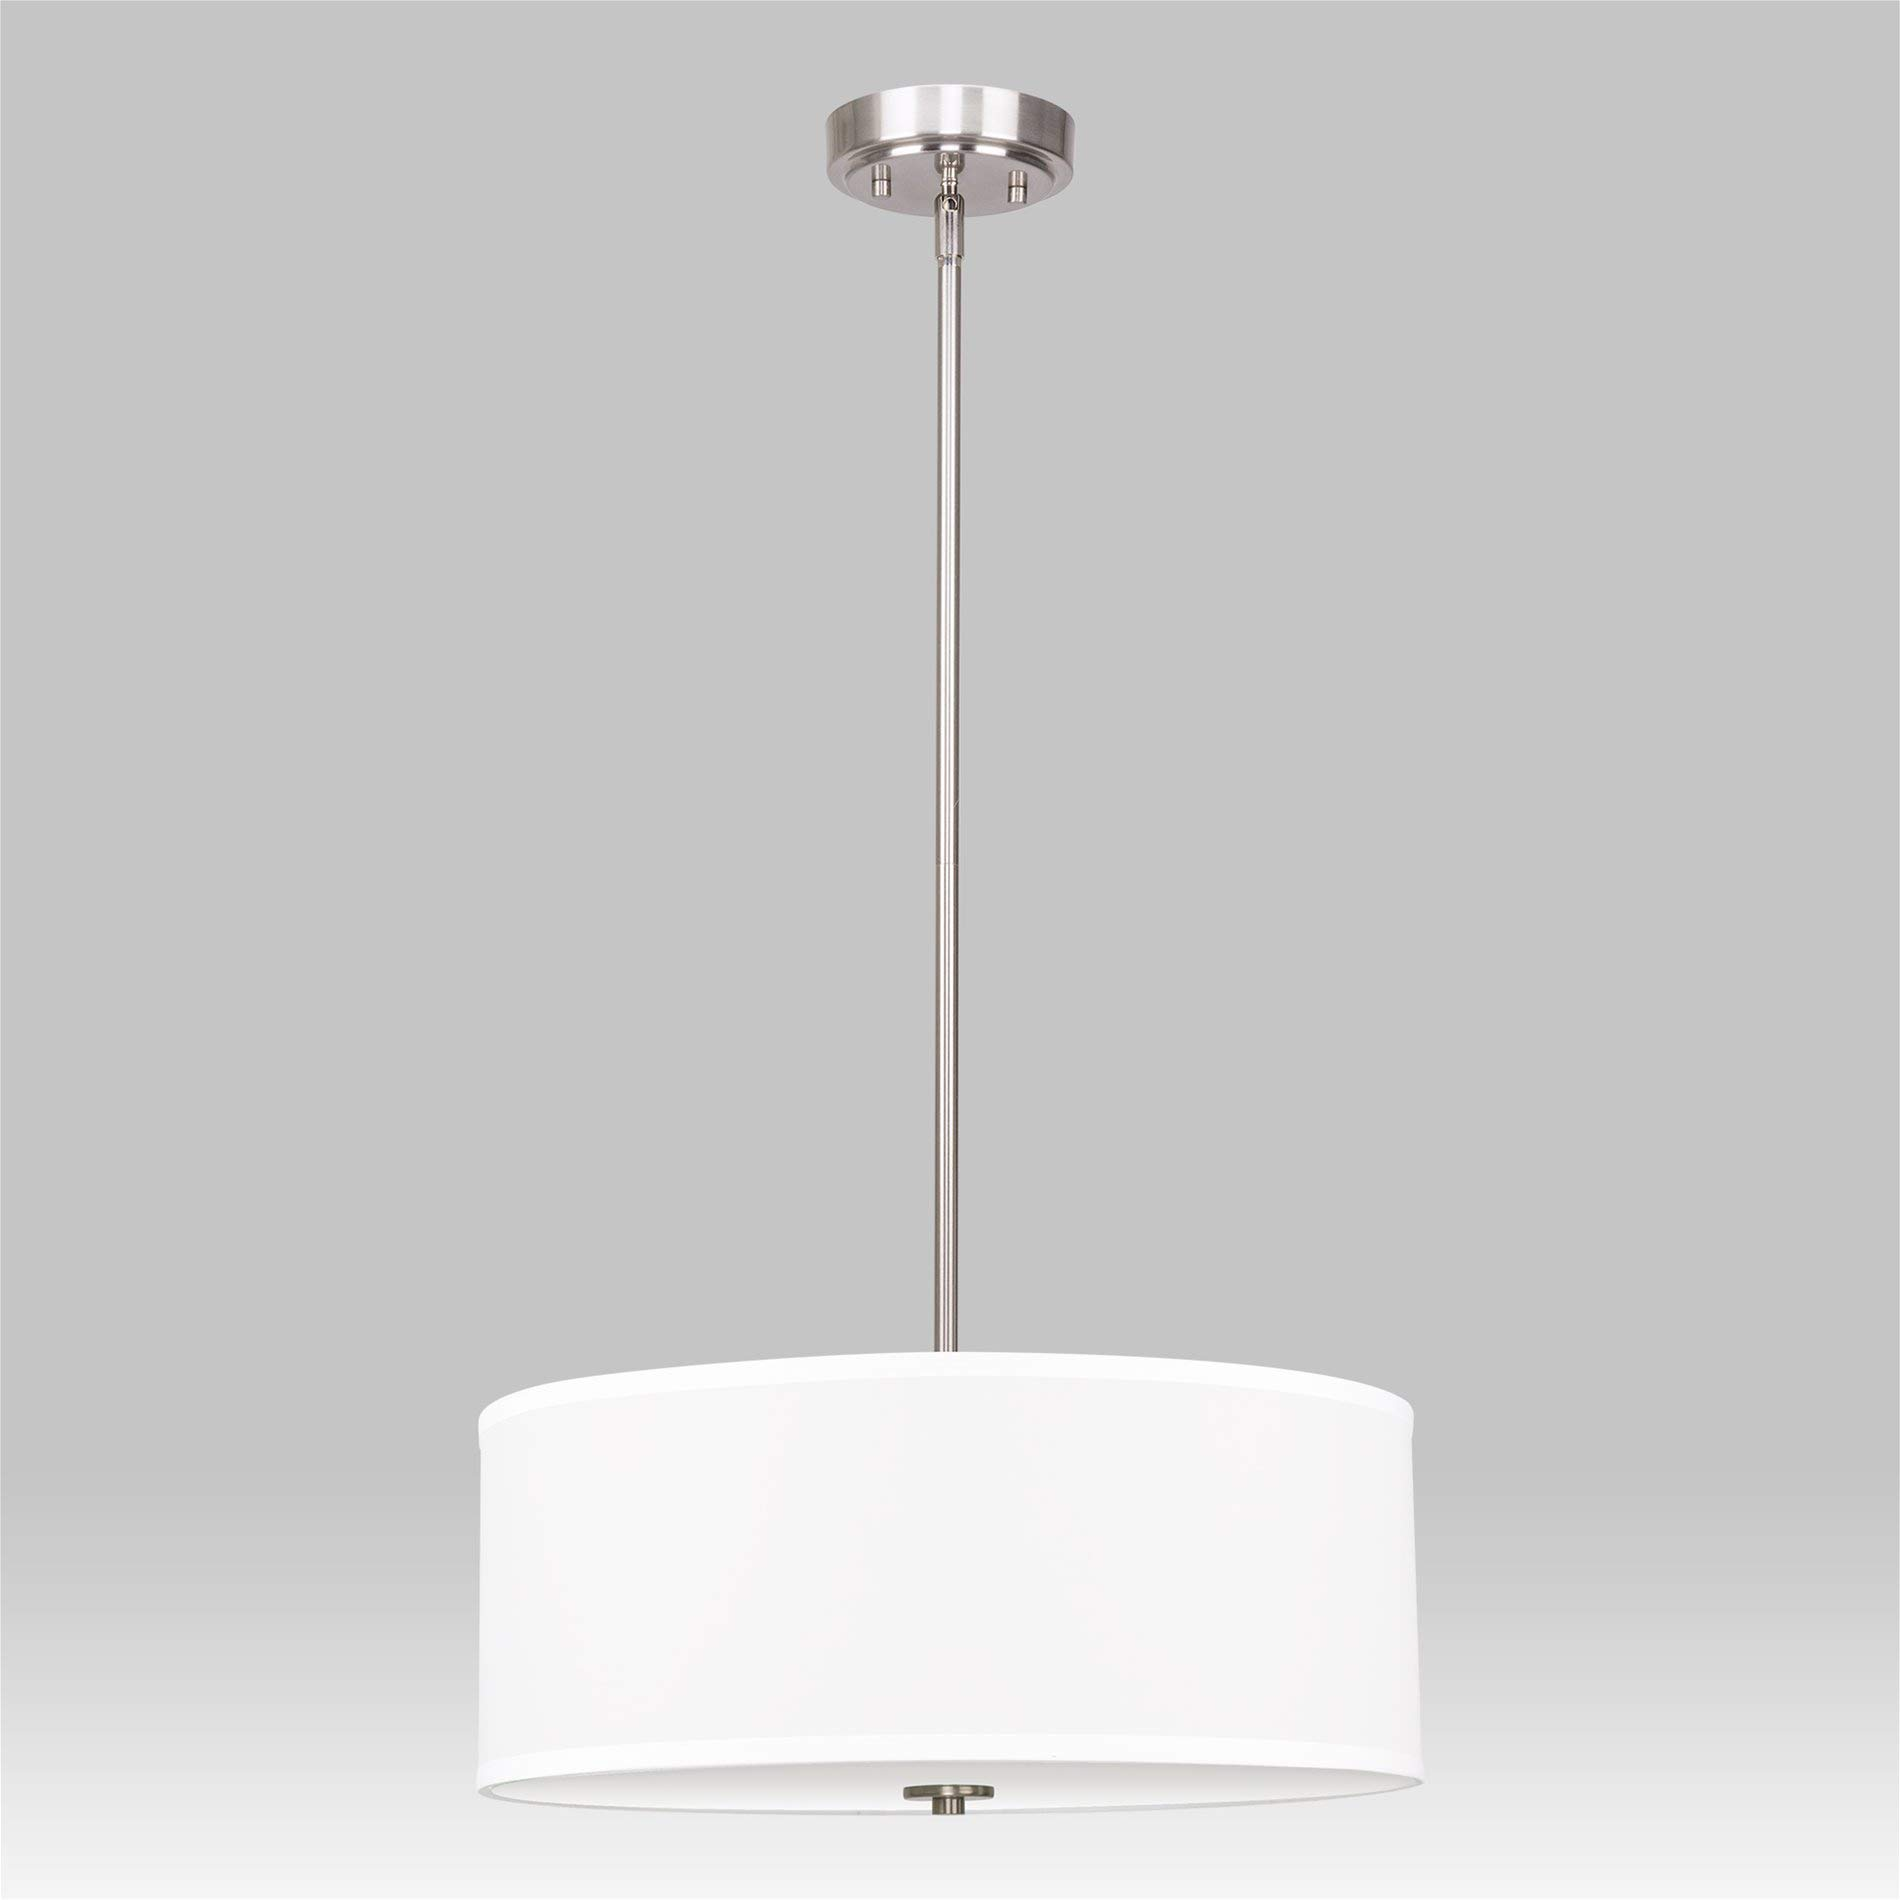 Kira Home Nolan 18'' Classic Drum Chandelier, Stem-Hung Adjustable Height, White Fabric Shade + Glass Diffuser, Brushed Nickel Finish by Kira Home (Image #1)